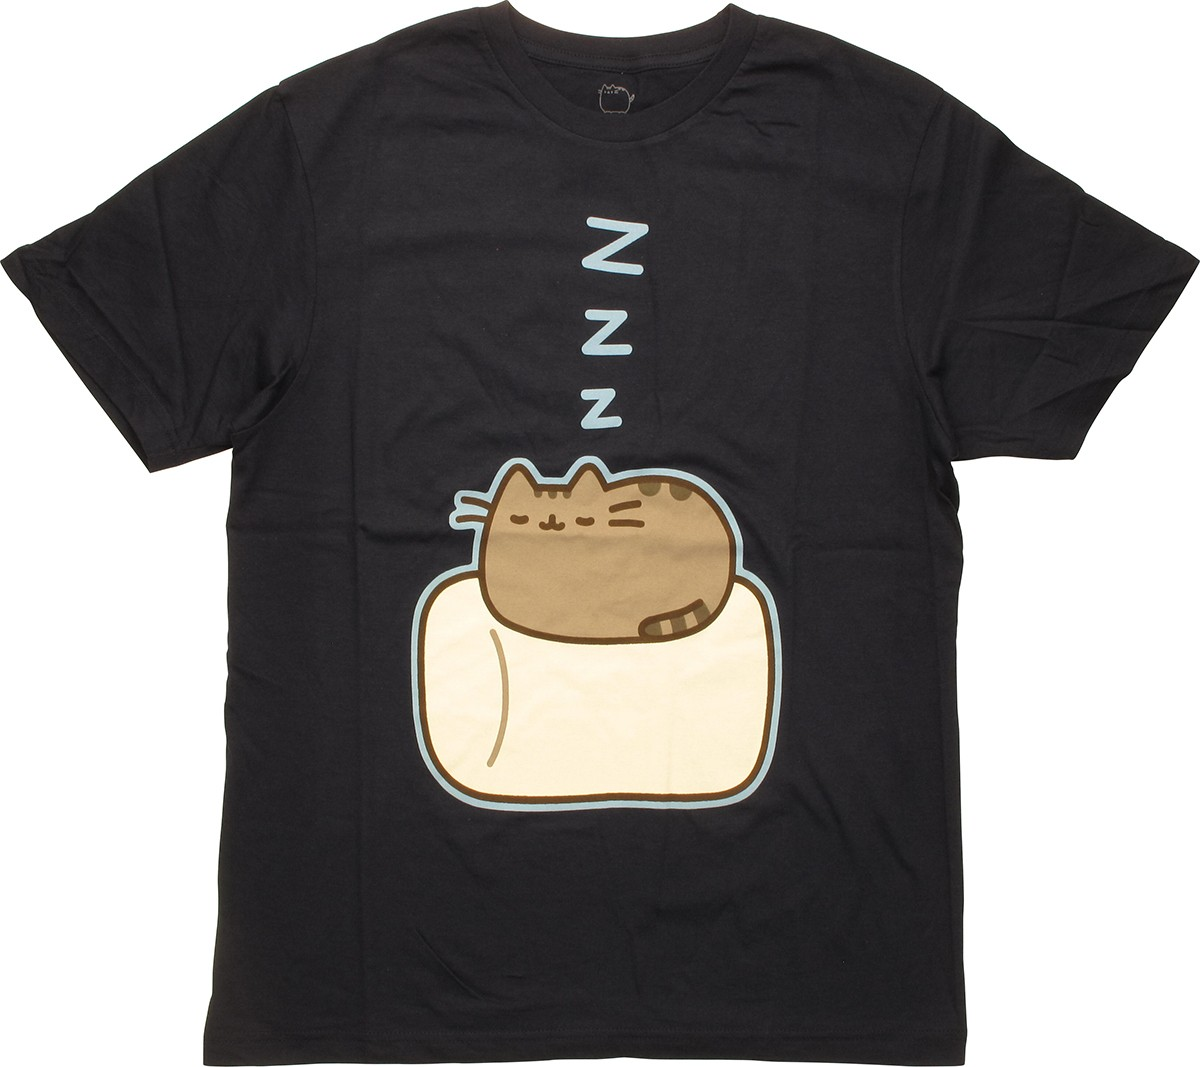 Find new and preloved Pusheen items at up to 70% off retail prices. Poshmark makes shopping fun, affordable & easy!